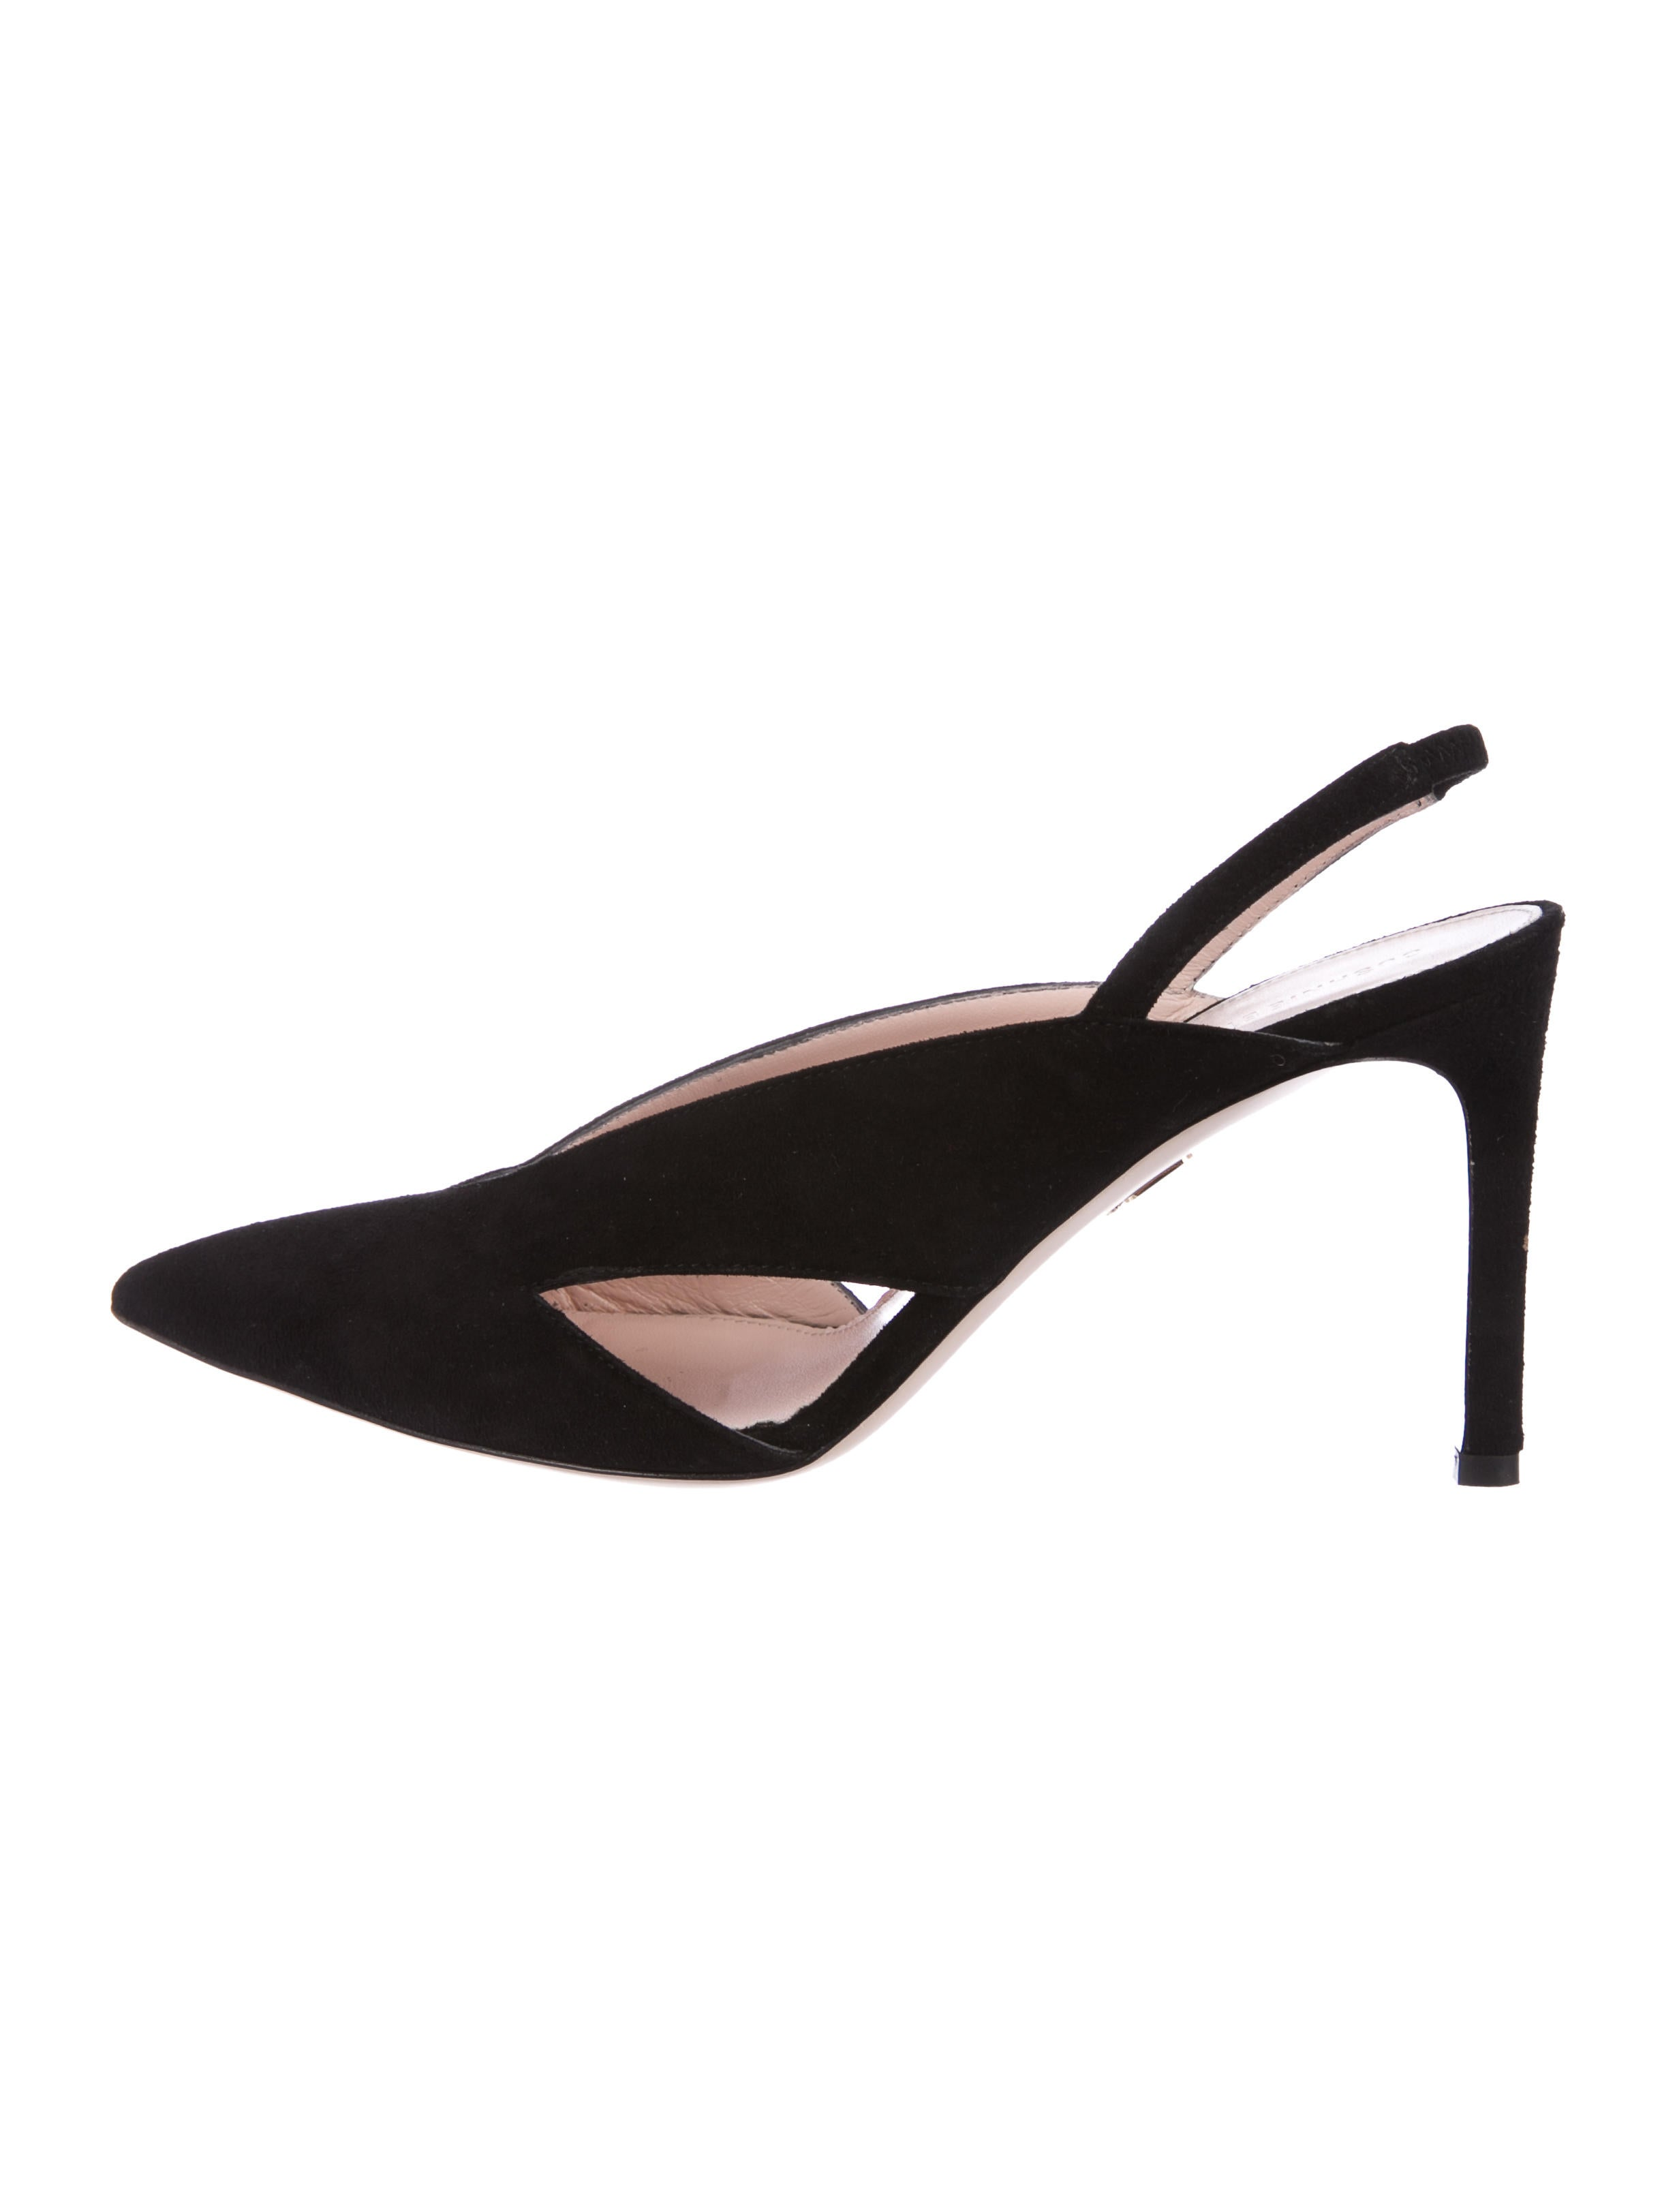 cheap supply Manchester Cushnie et Ochs Suede Slingback Pumps cheap best place discount popular free shipping outlet locations xKo54ZiU